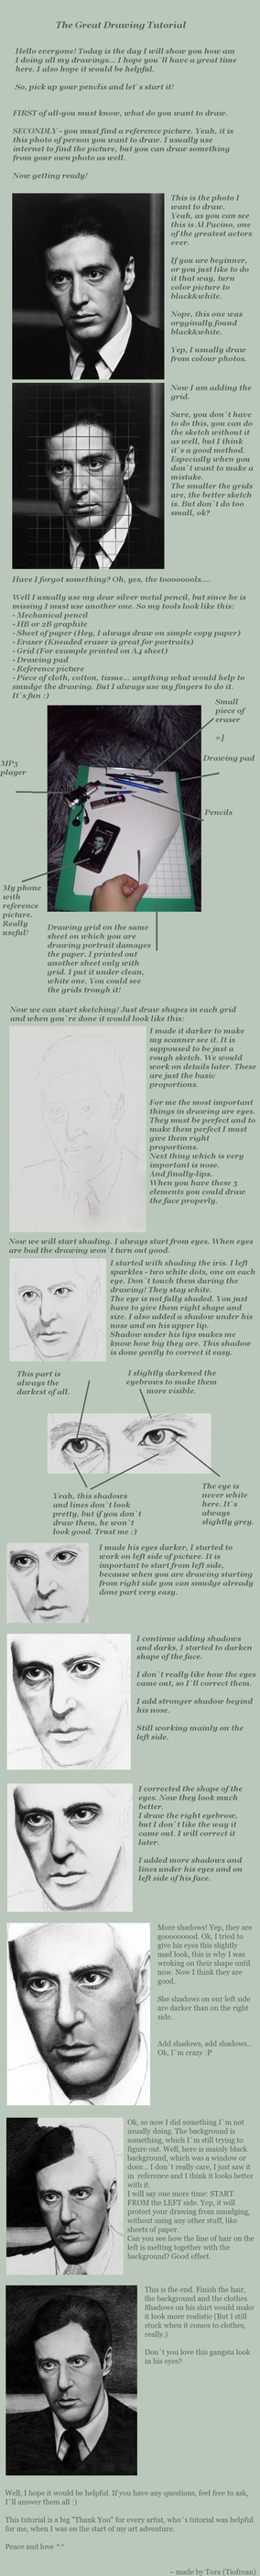 Drawing Portraits Tutorial by Tiofrean